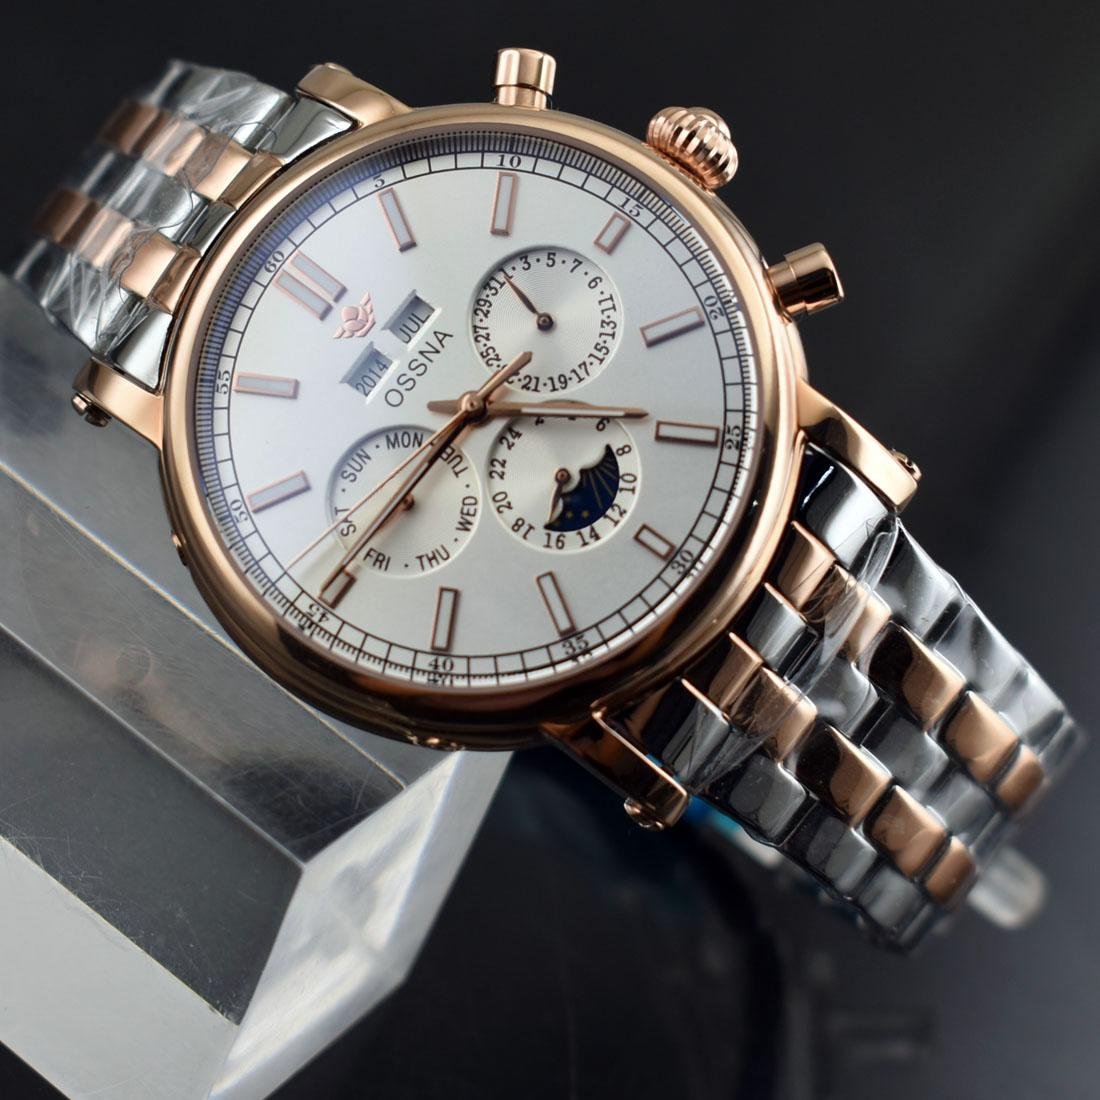 2166 Ossna Date&Day 41mm White Dial Stainless Steel Strap Automatic Men'S  Watch Waterproof Watches Couple Watches From Hk007, $101.53| DHgate.Com